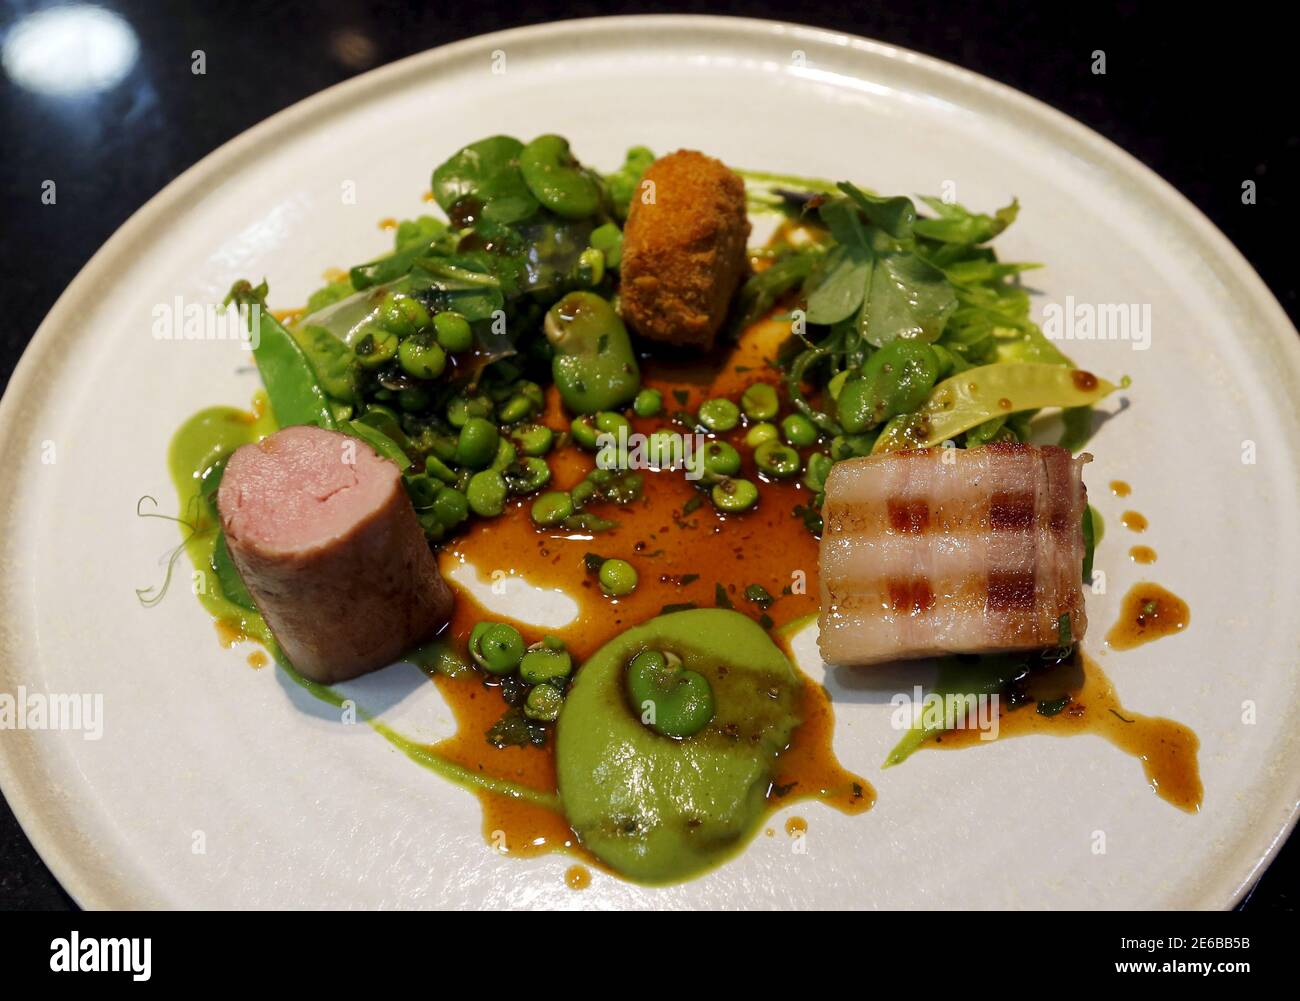 """A plate of Hungarian """"mangalica"""" pork prepared in three ways by a chef at Costes, the first restaurant to earn a Michelin star in Hungary, is seen in Budapest, Hungary, June 9, 2015. Mangalicas, which were all but extinct 25 years ago, now feature prominently in some of the best restaurants in the world for their meat, which gets its exceptional taste from the fat stored inside the muscle tissue. Picture taken June 9, 2015. REUTERS/Laszlo Balogh Stock Photo"""